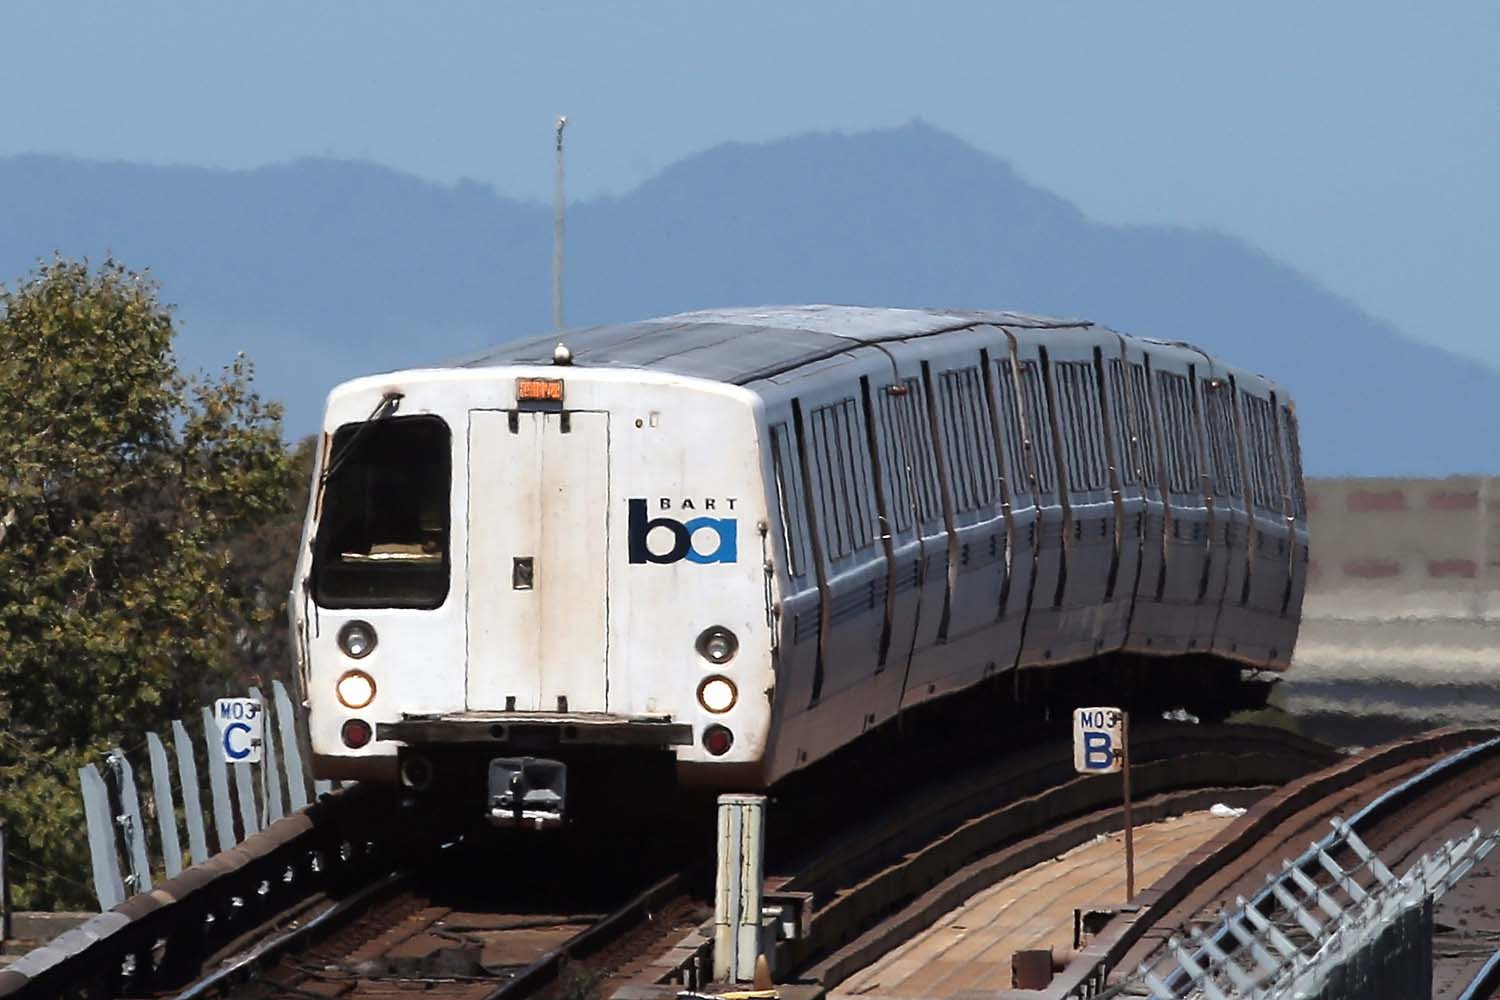 Justin Sullivan/Getty ImagesBART ridership was down sharply Friday